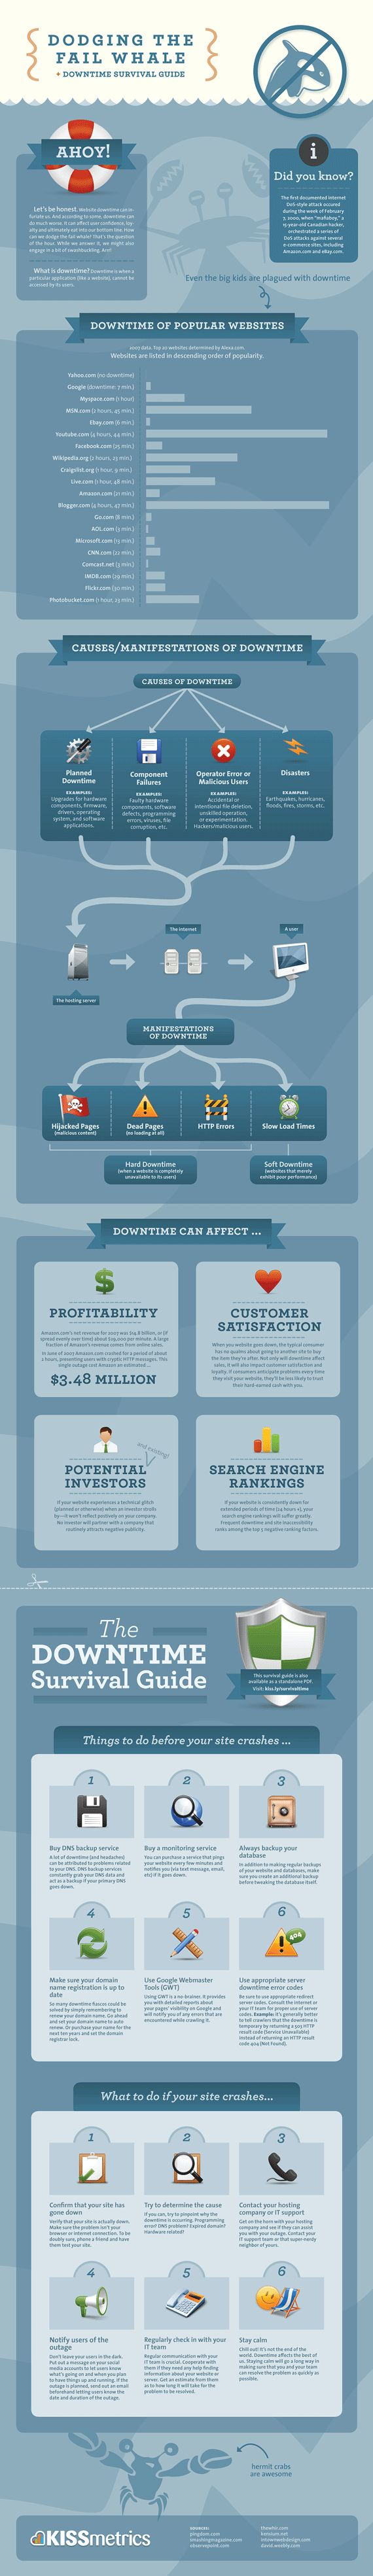 The Downtime Survival Guide Infographic: Guide Infographic, Downtime Survival Guide Sm, Fail Whales, Downtime Survival Guide Social, Agency Infographics, 3 S Infographics, Website Downtime, Downtime Infographic